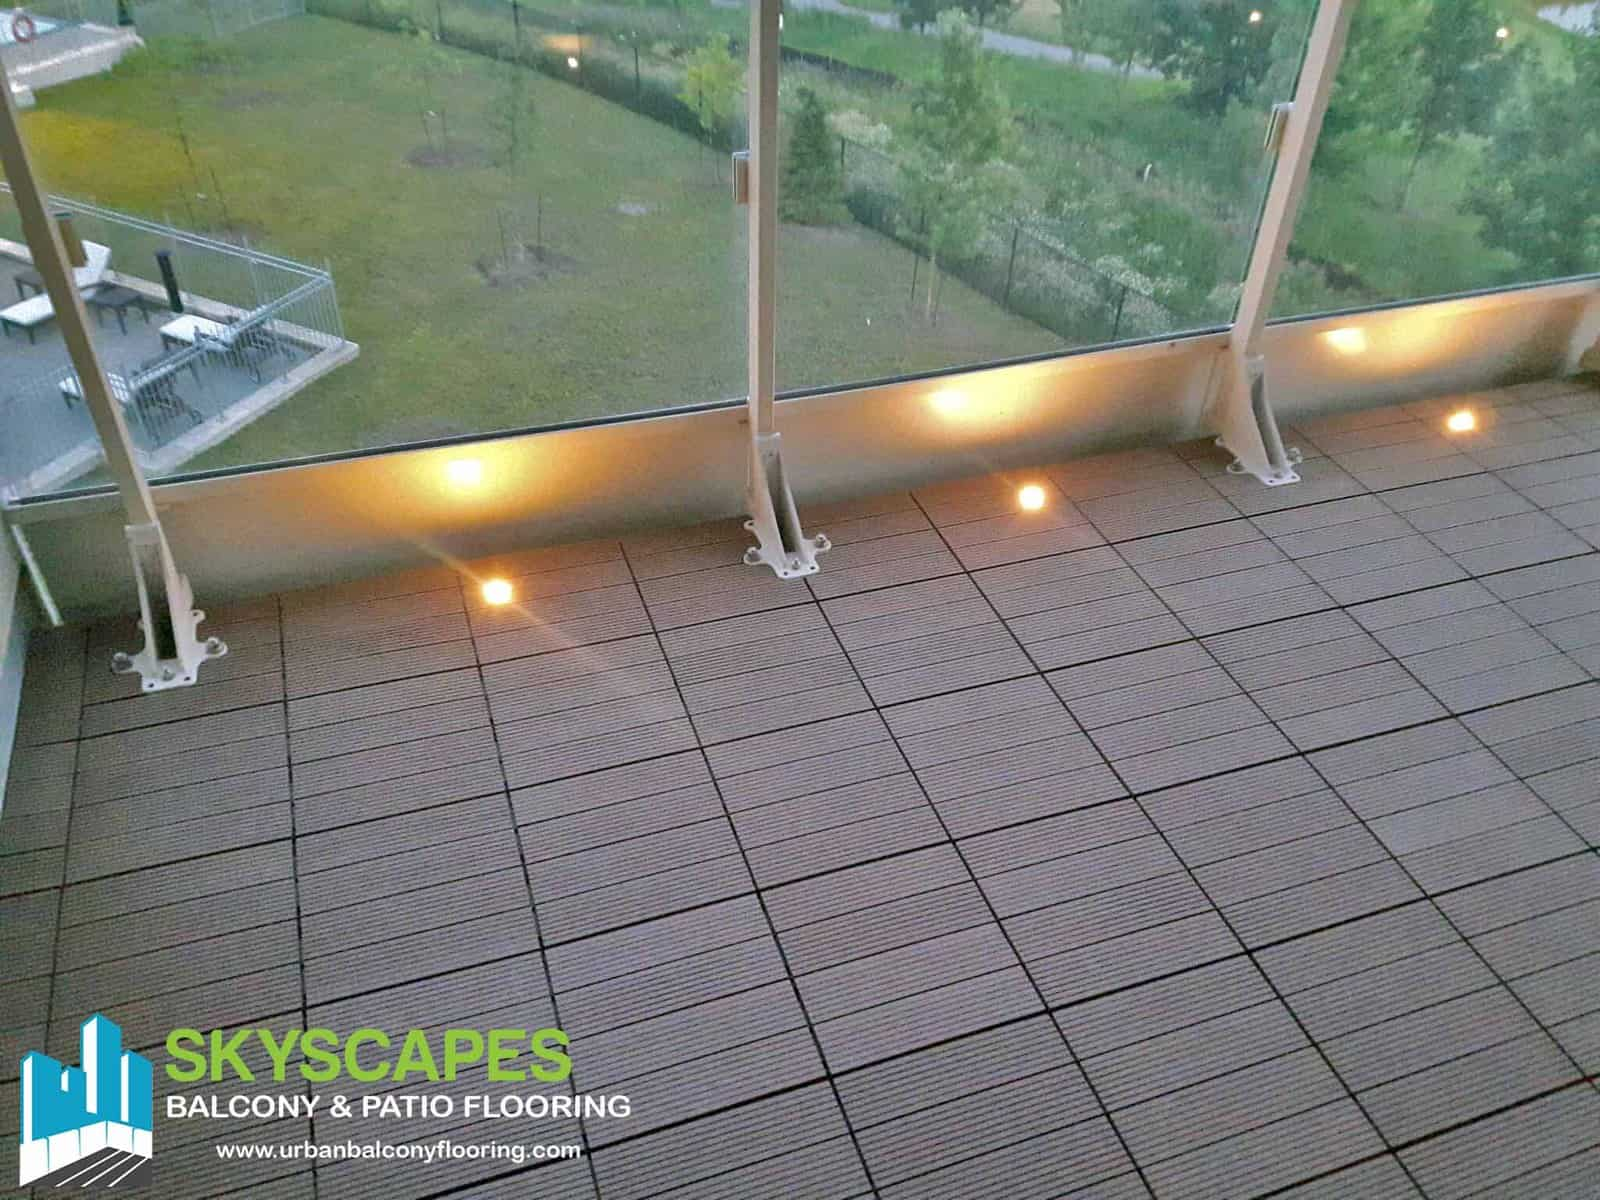 Teak Composite Tiles and Lights on Toronto Balcony. Ridged WPC Tile seen on balcony floor. Measures 1 by 1 feet. Skyscapes green and blue logo at bottom-left of image.